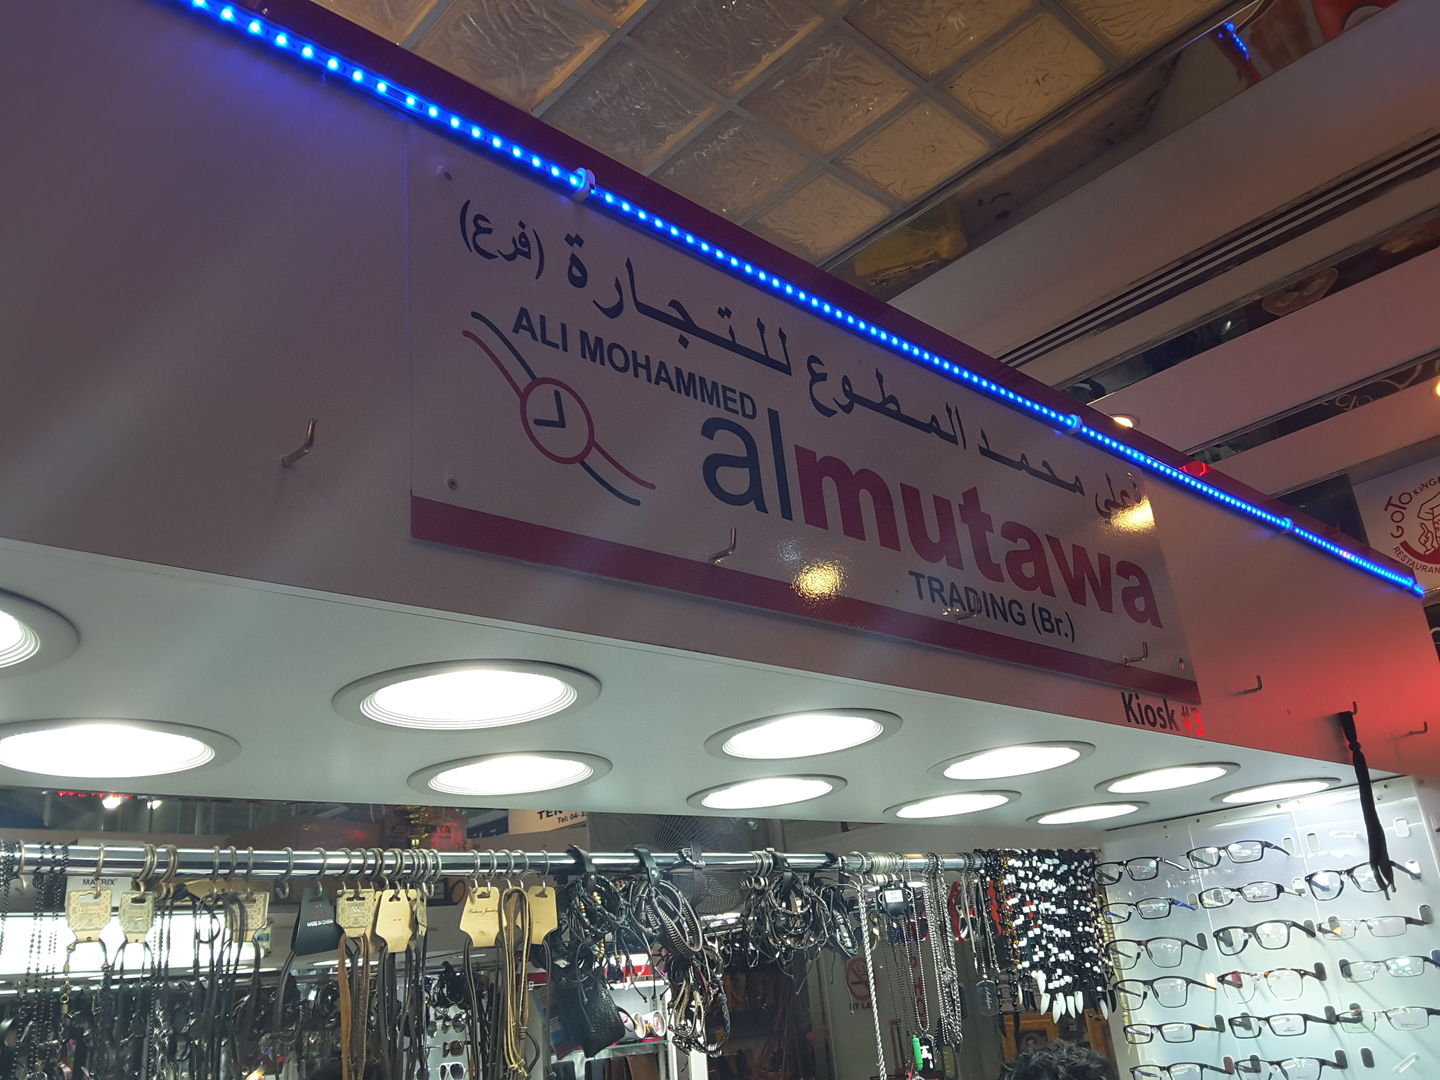 HiDubai-business-ali-mohammed-al-mutawa-trading-shopping-fashion-accessories-al-karama-dubai-4